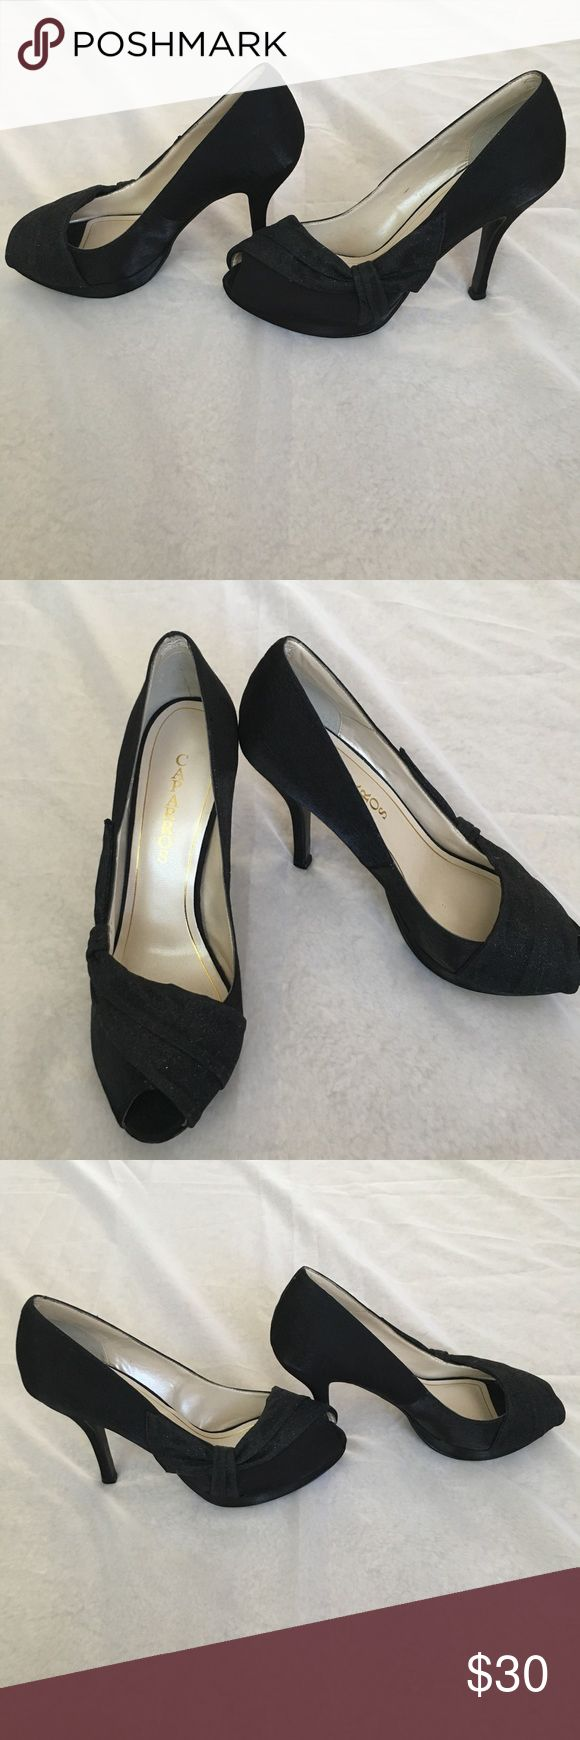 """Caparros Peep Toe Heels These size 9 Caparros are in GUC. There is wear on the bottom, but otherwise little wear. These are perfect for a night out, holidays or other special occasions. Approximately 4"""" heel. Caparros Shoes Heels"""